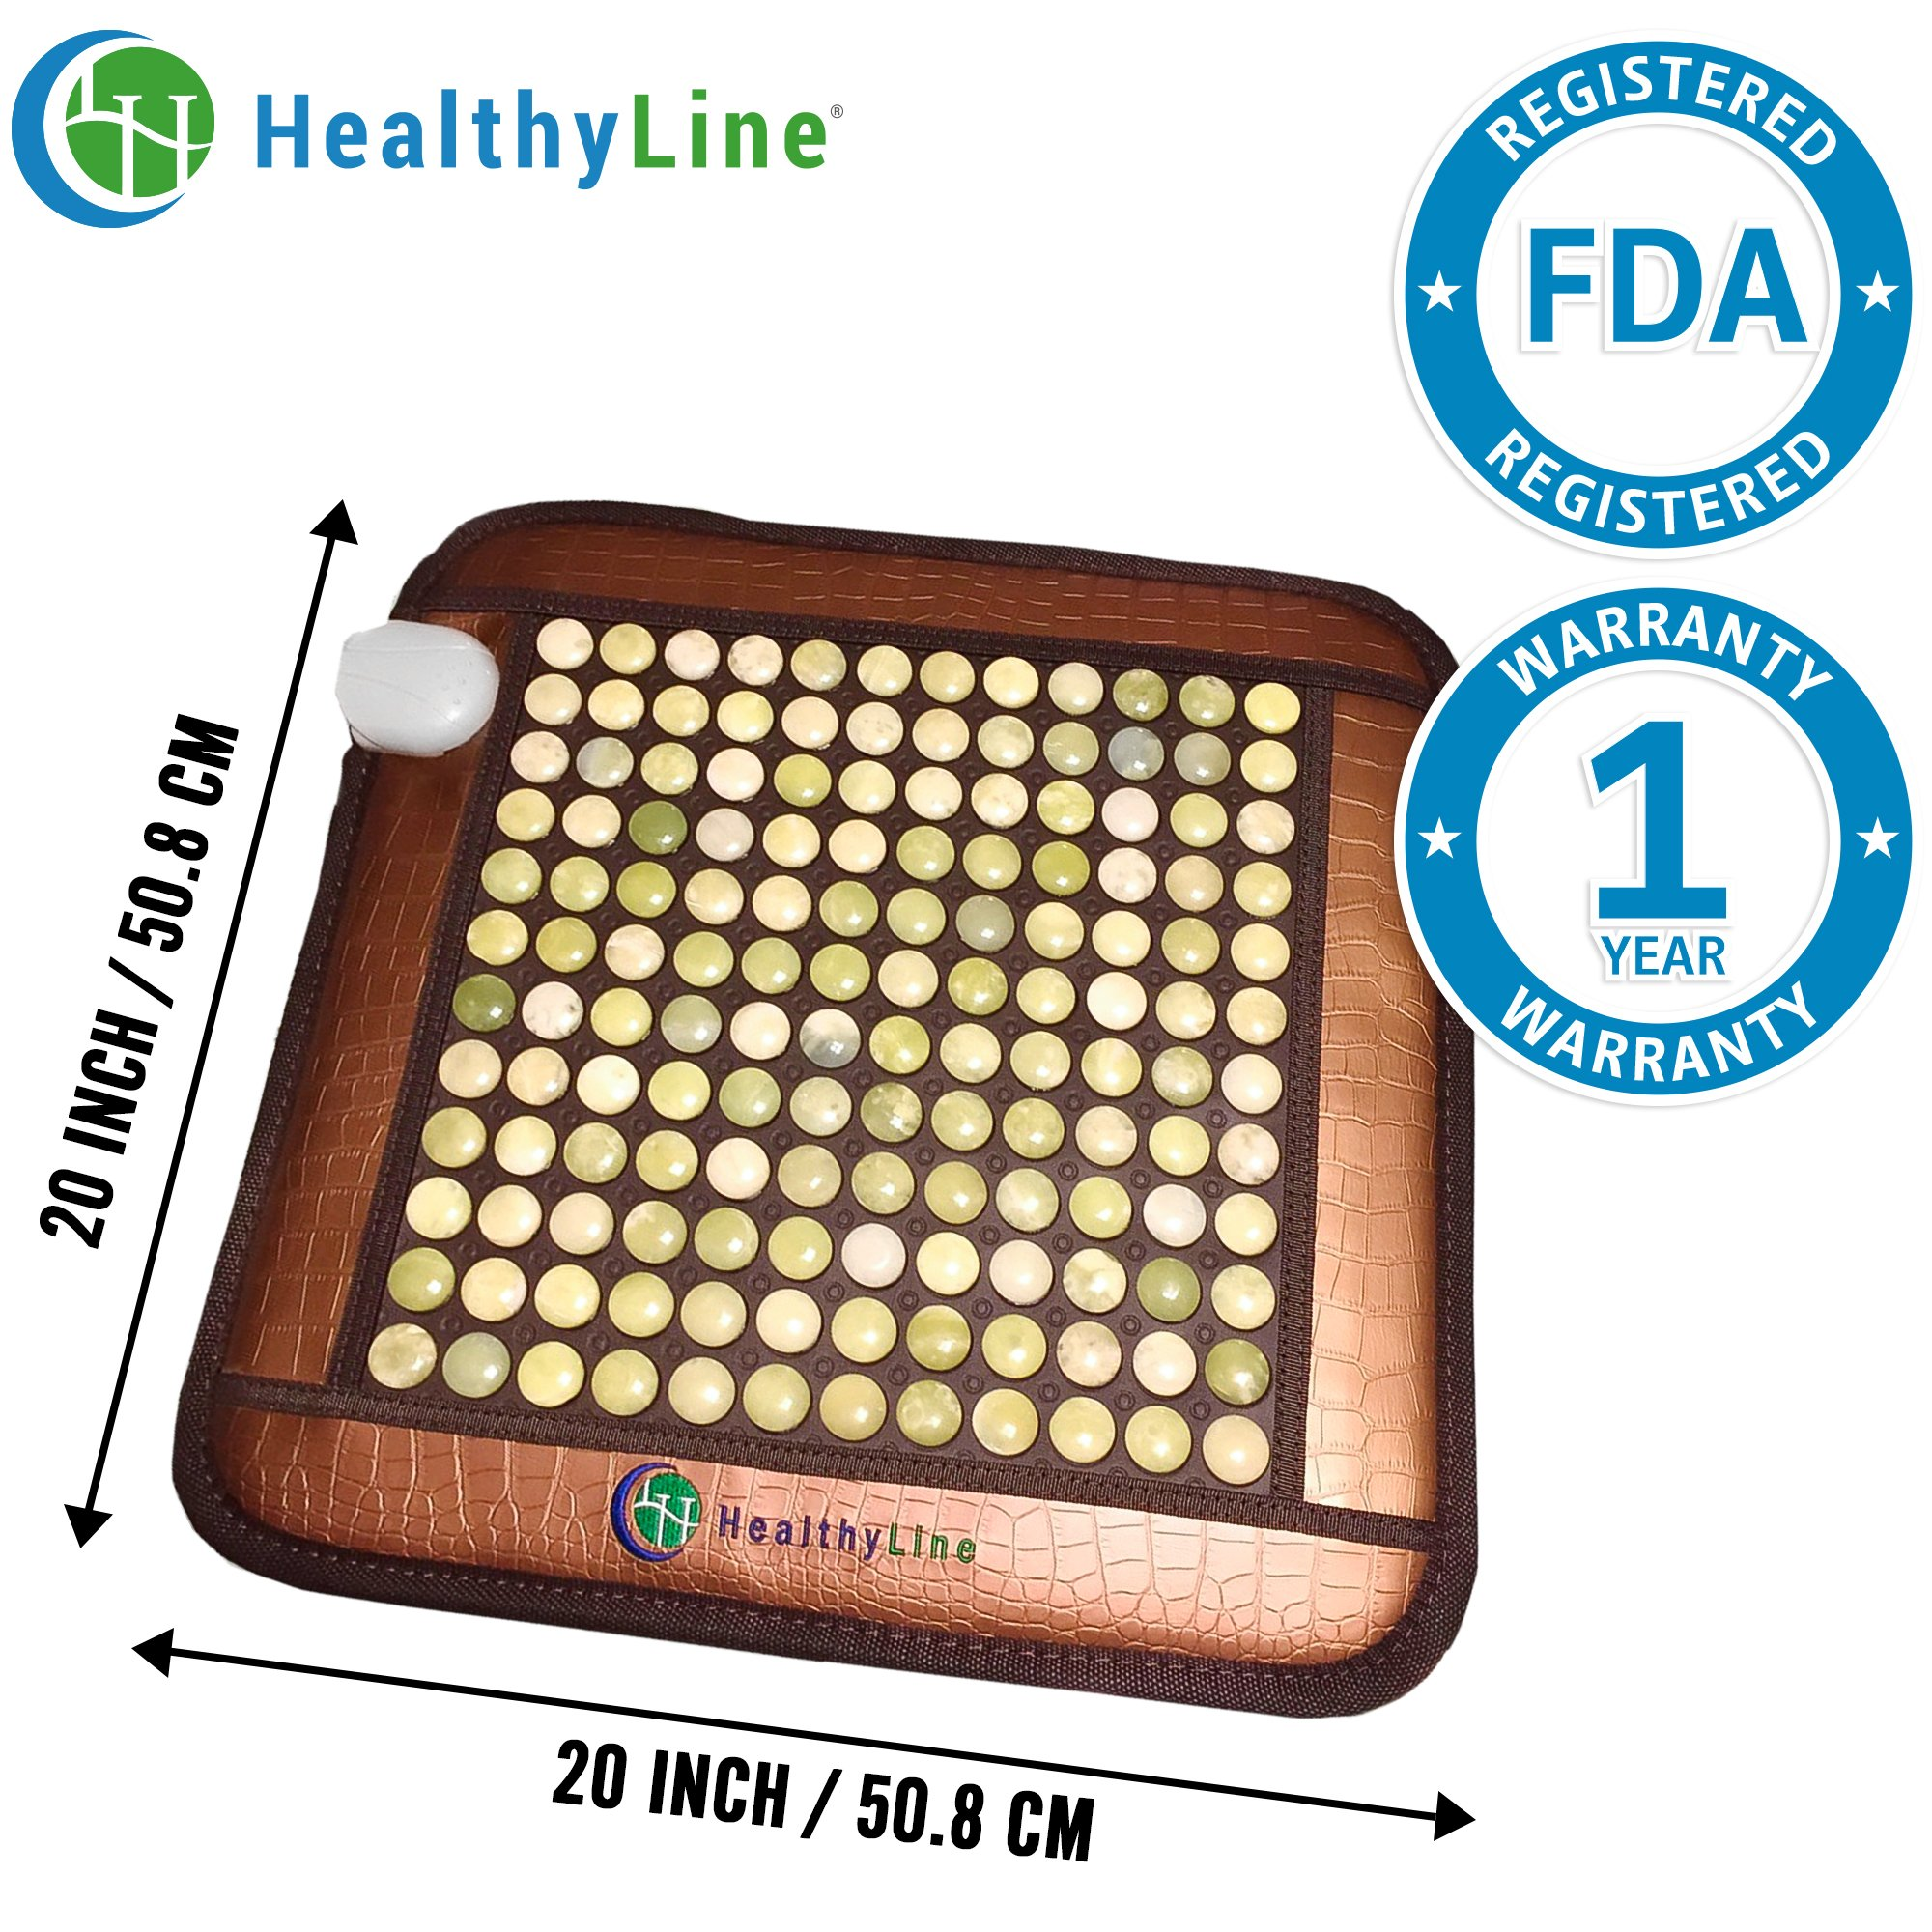 HealthyLine Far Infrared Heating Pad (Firm)|Natural Jade Healing Pad 20''X 20''| Heated Negative Ions|Relieve Muscles, Joints & Bones Pain |US FDA by HealthyLine